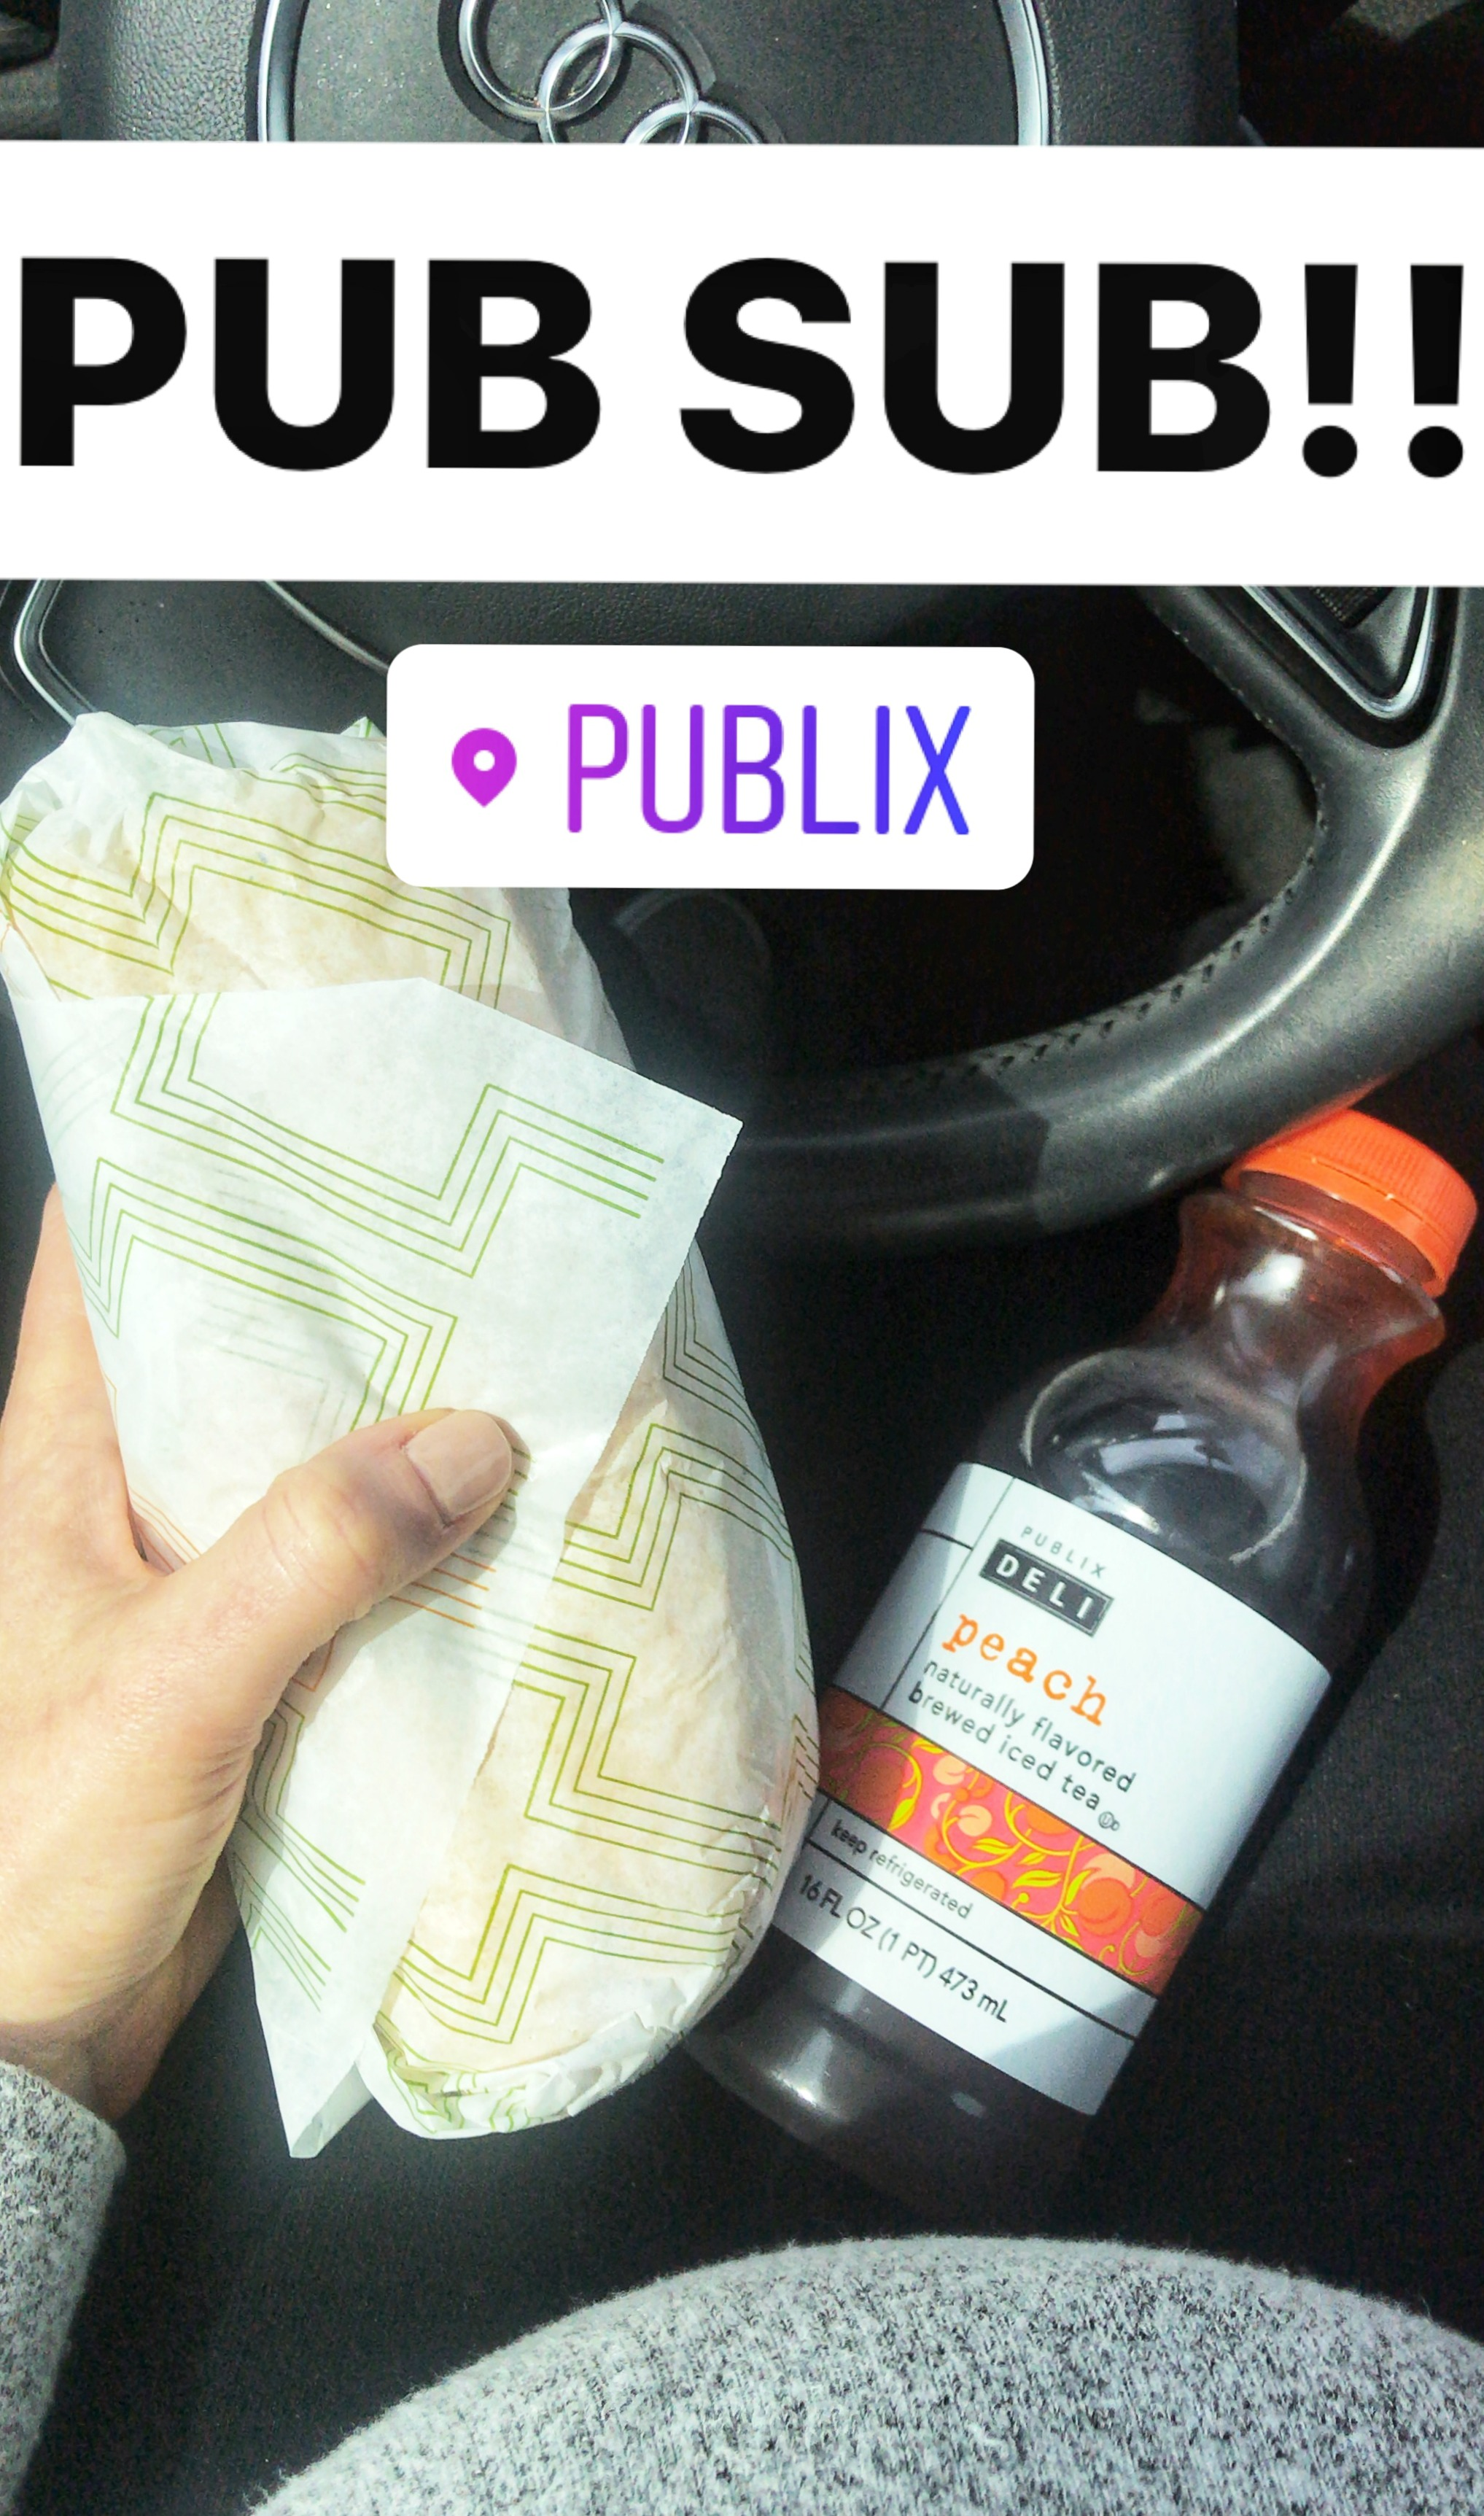 publix sub and bump